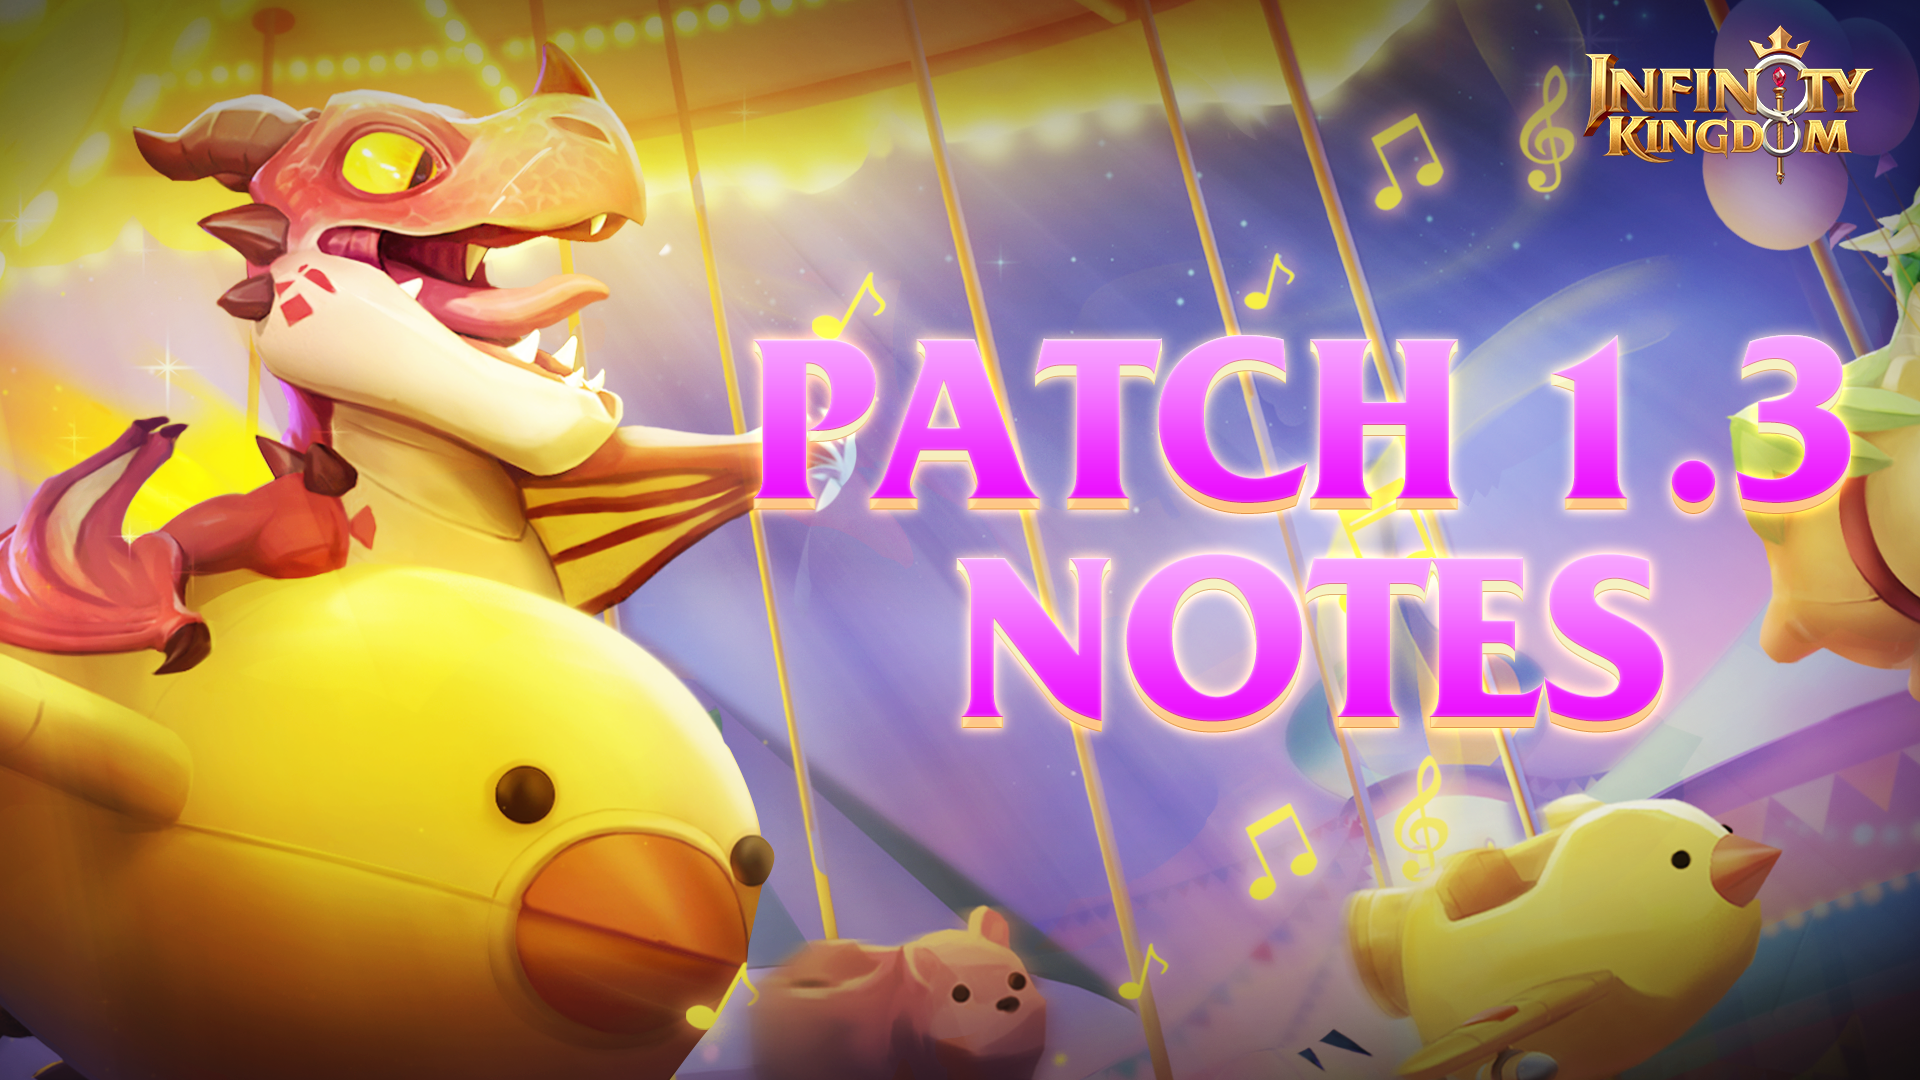 Infinity Kingdom Patch 1.3 Notes